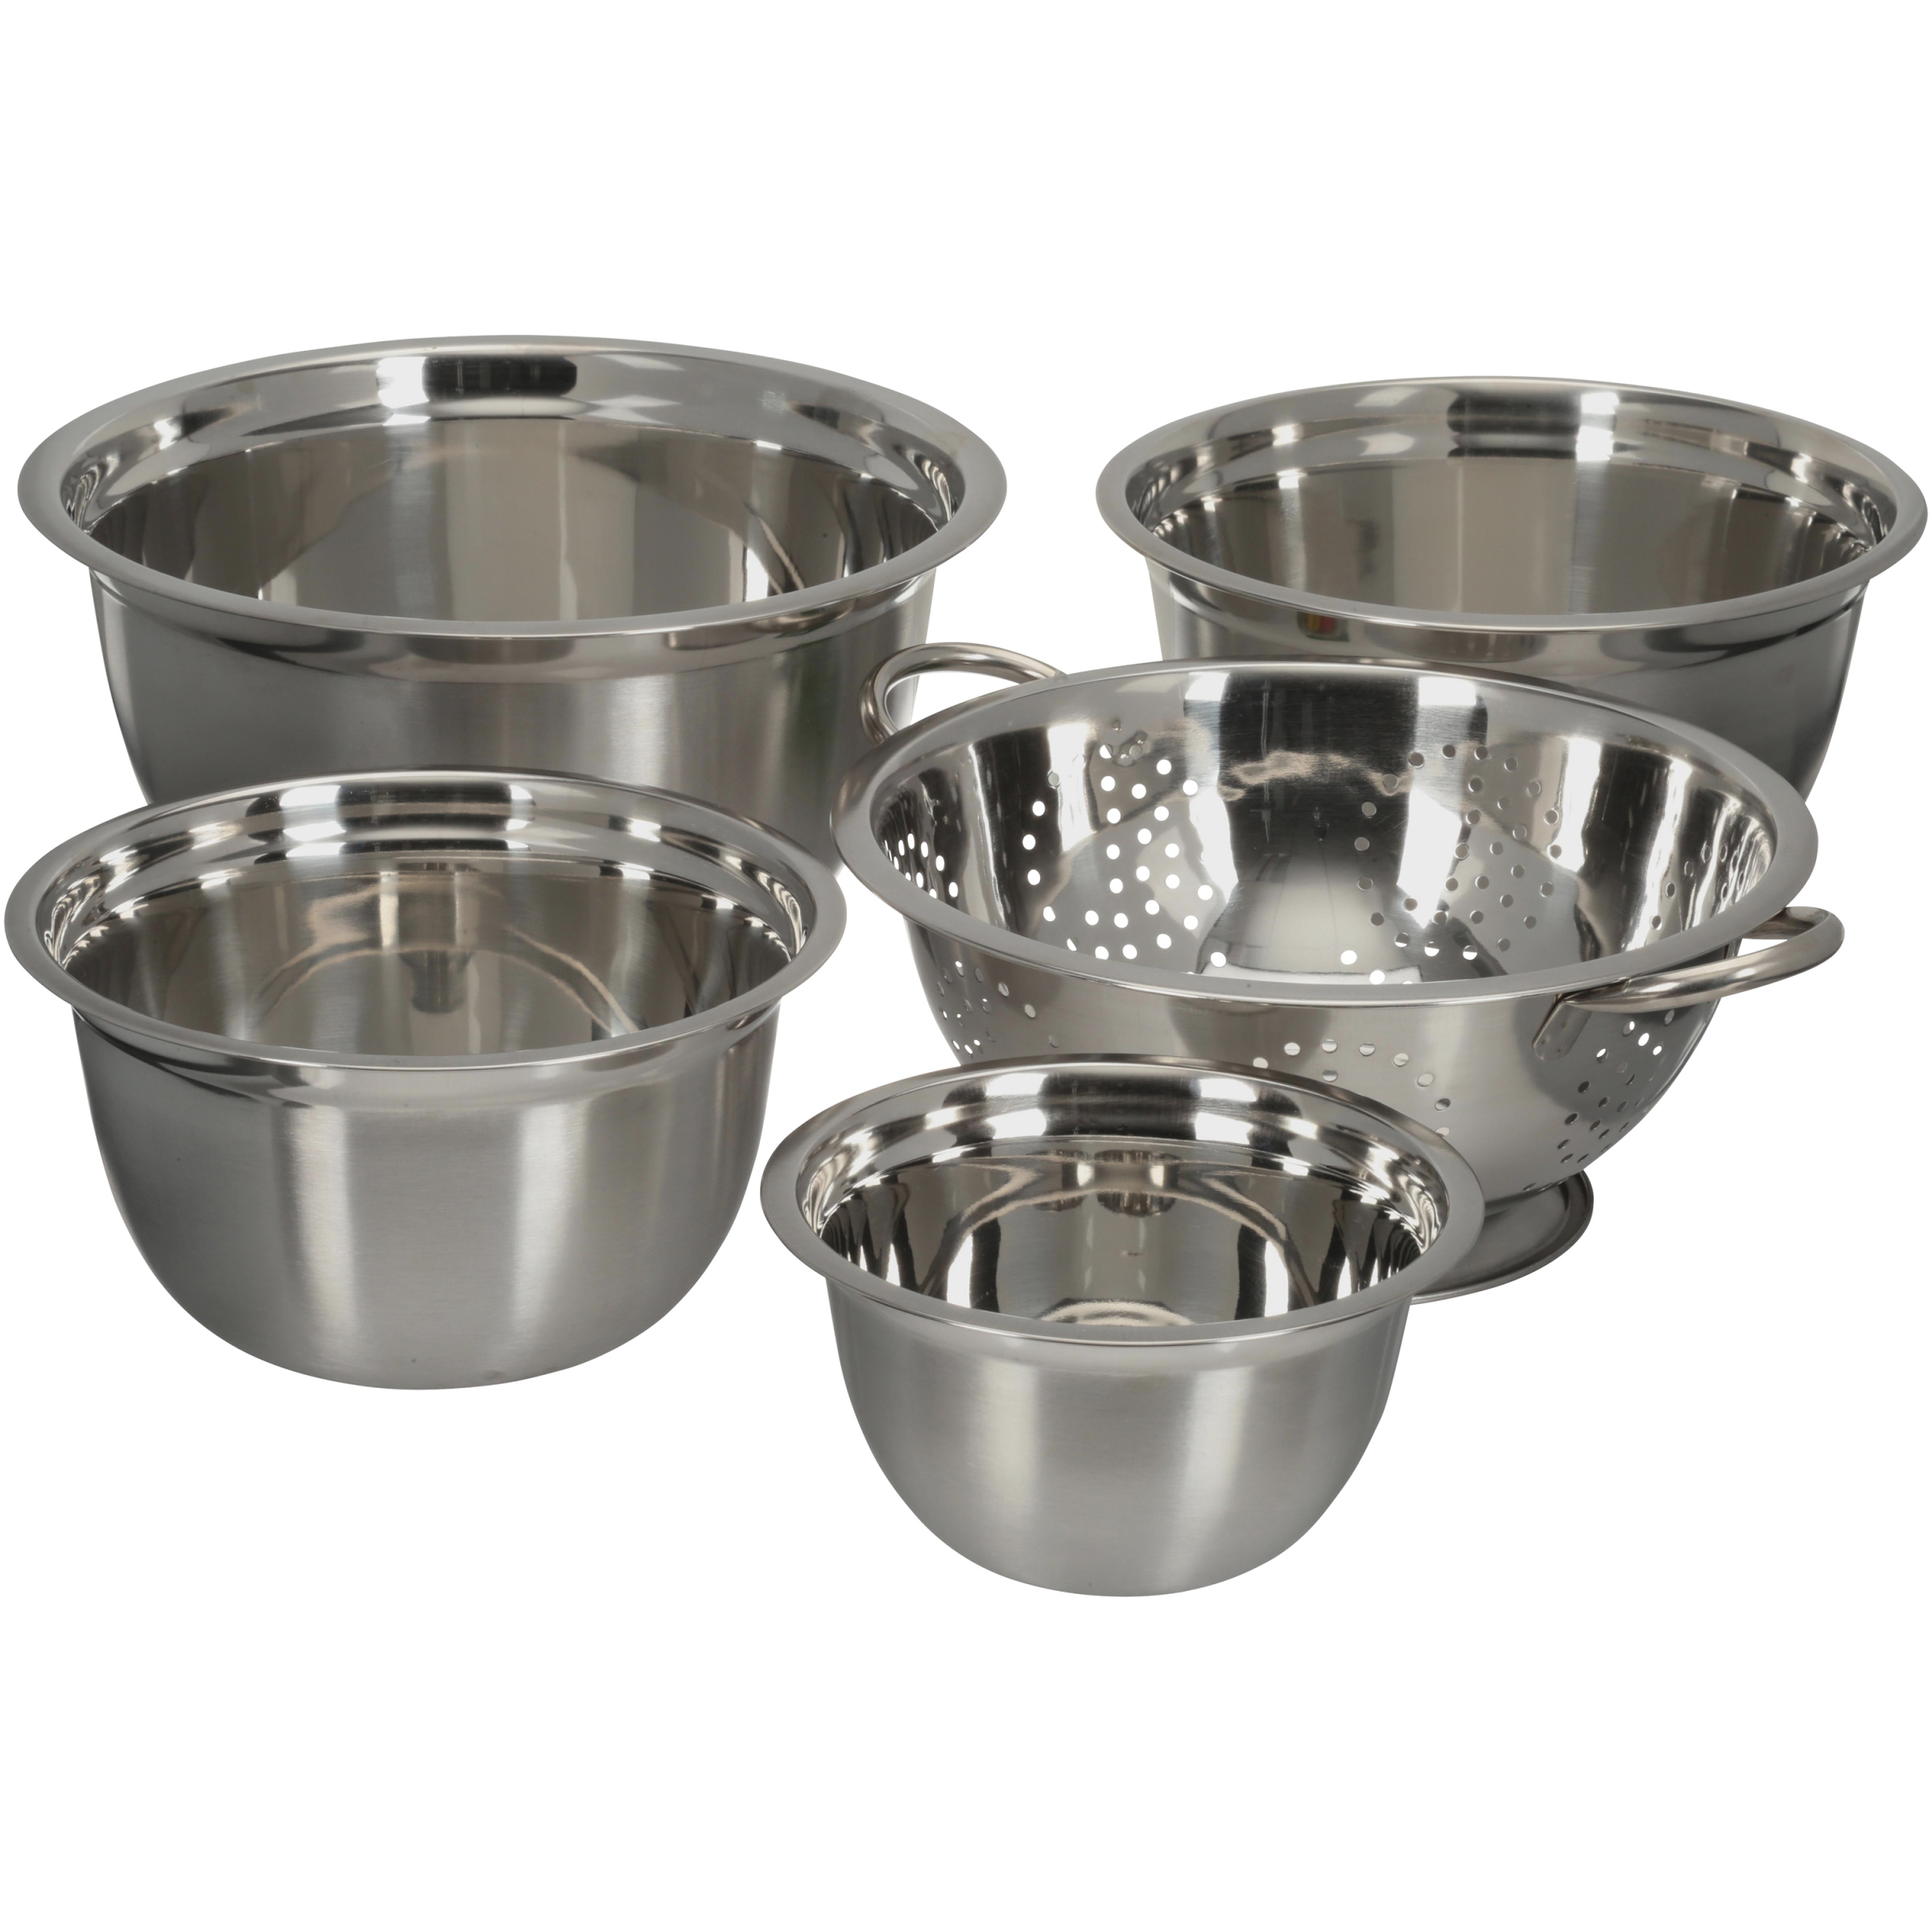 Prep-N-Cook Stainless Steel Set 5 pc Pack